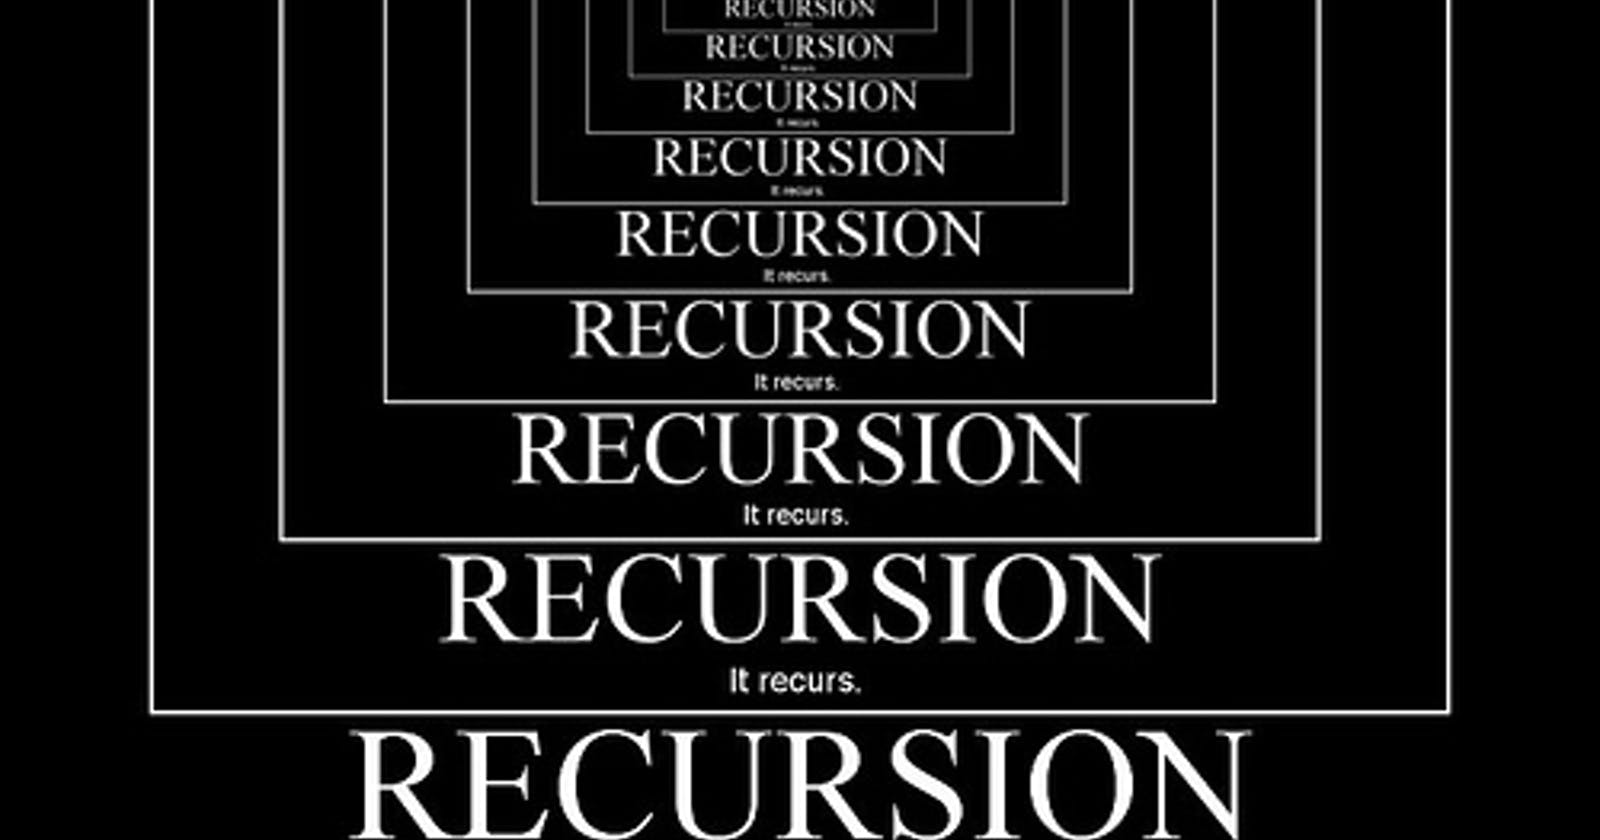 Recursively thinking about... recursion